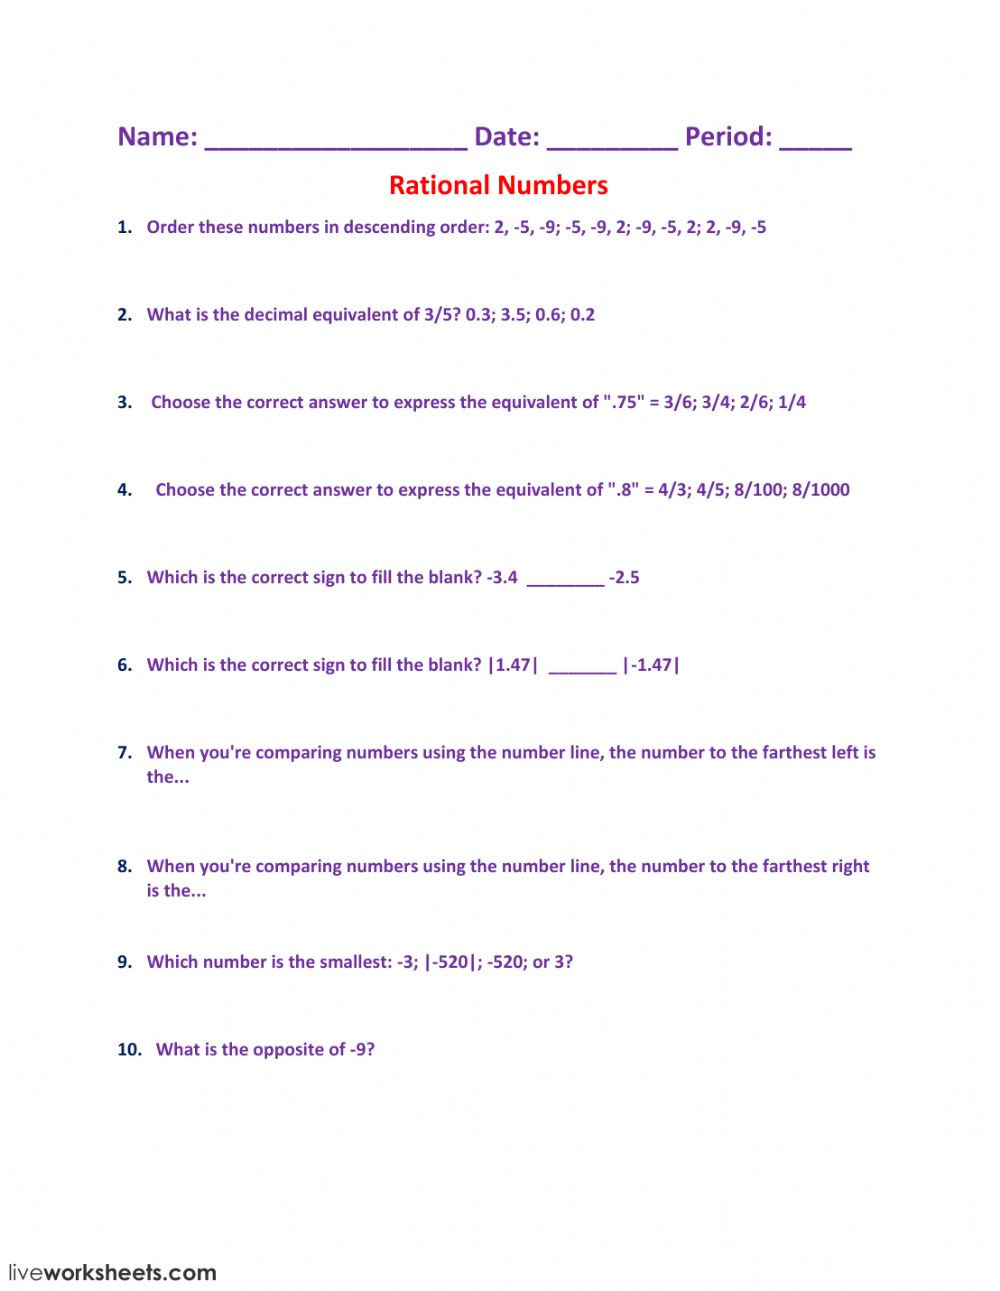 Rational Numbers gx nf